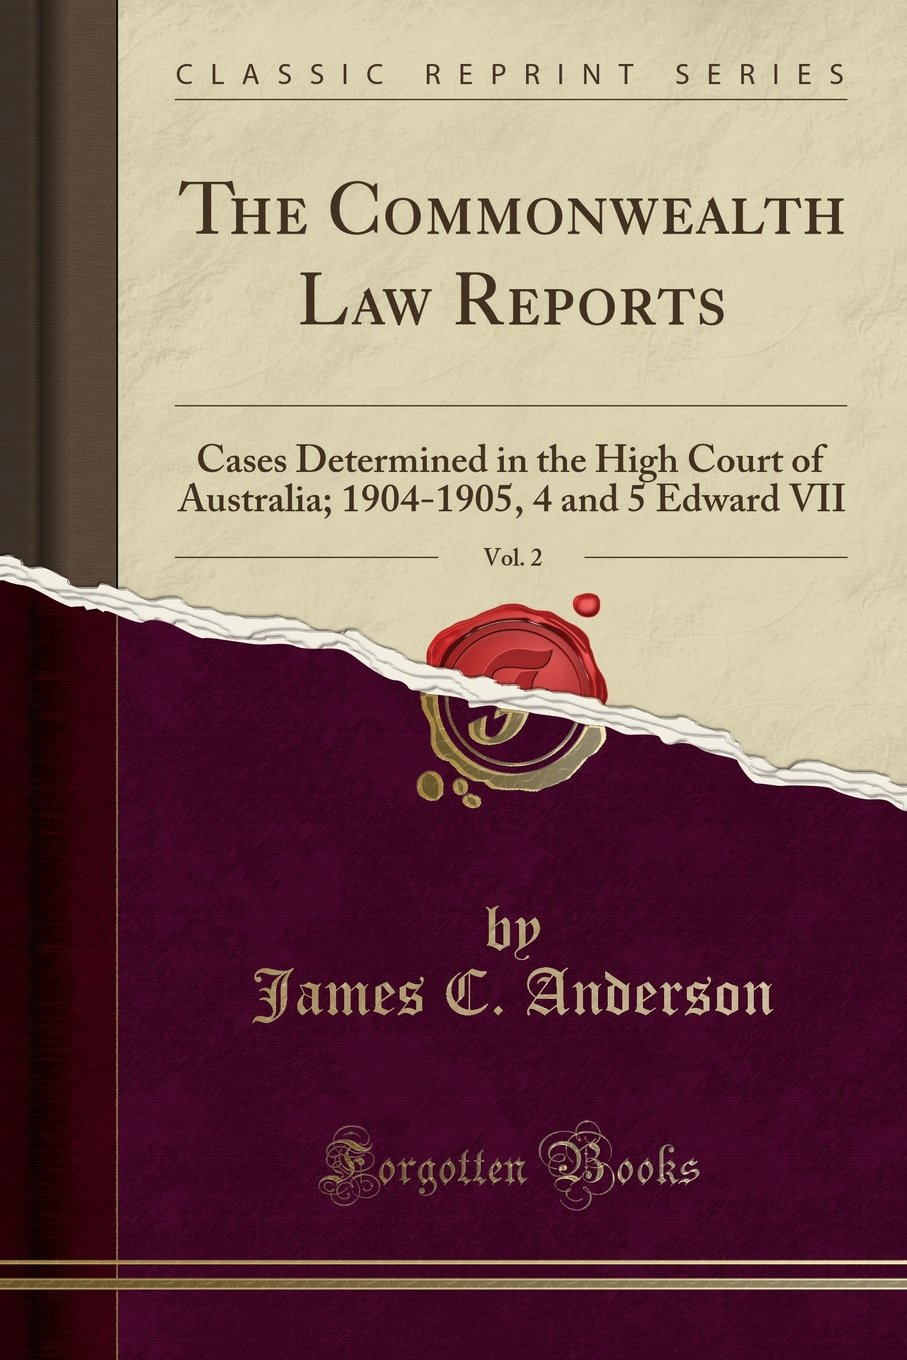 The Commonwealth Law Reports, Vol. 2: Cases Determined in the High Court of Australia; 1904-1905, 4 and 5 Edward VII (Classic Reprint) ebook